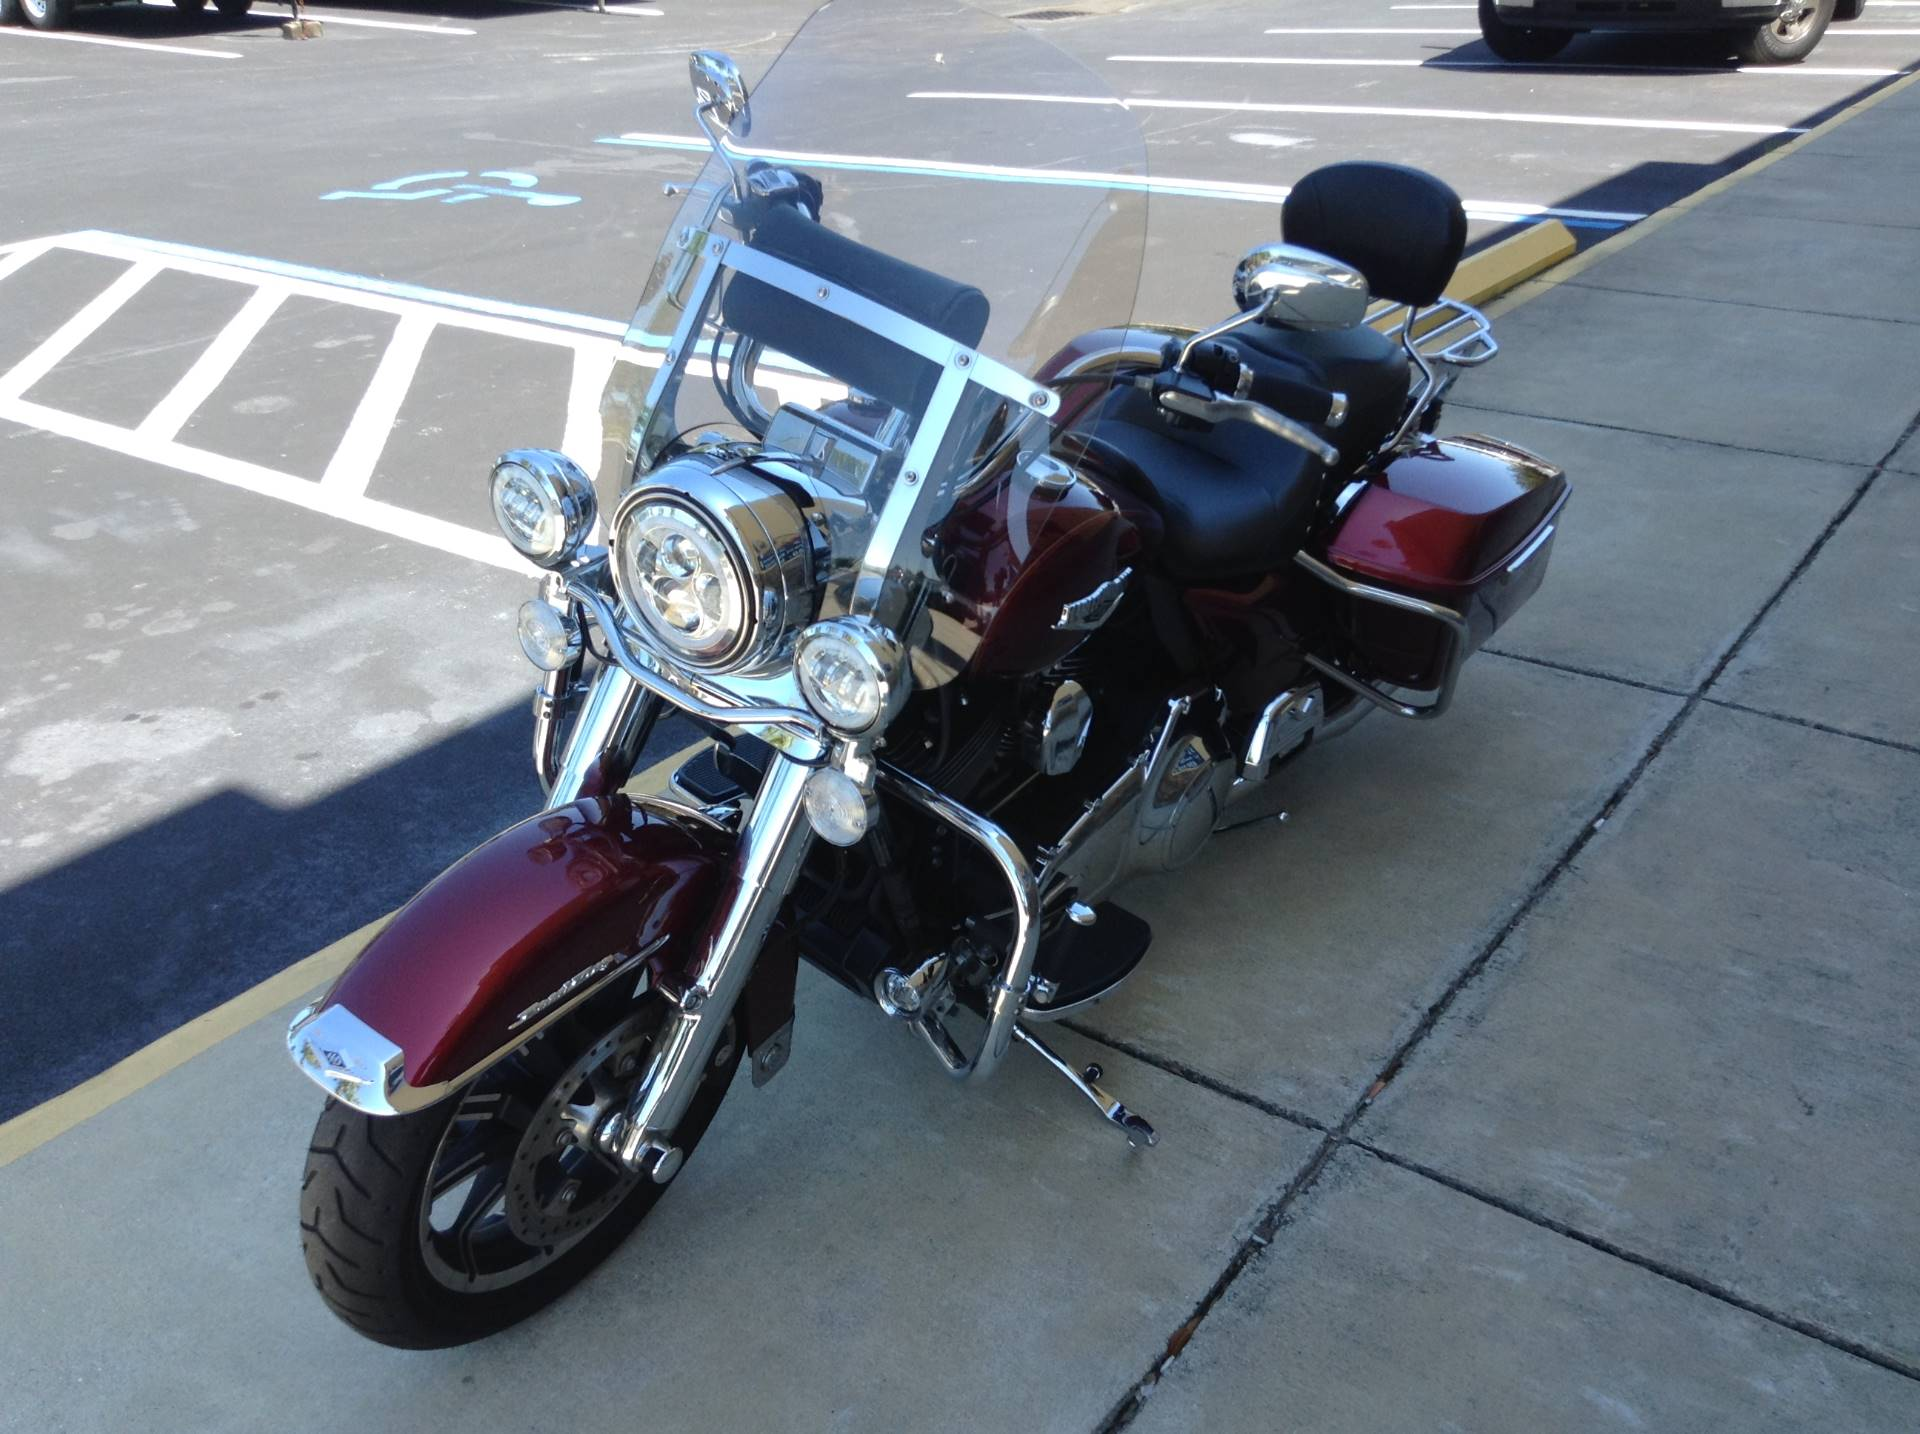 2016 Harley-Davidson ROAD KING in Panama City Beach, Florida